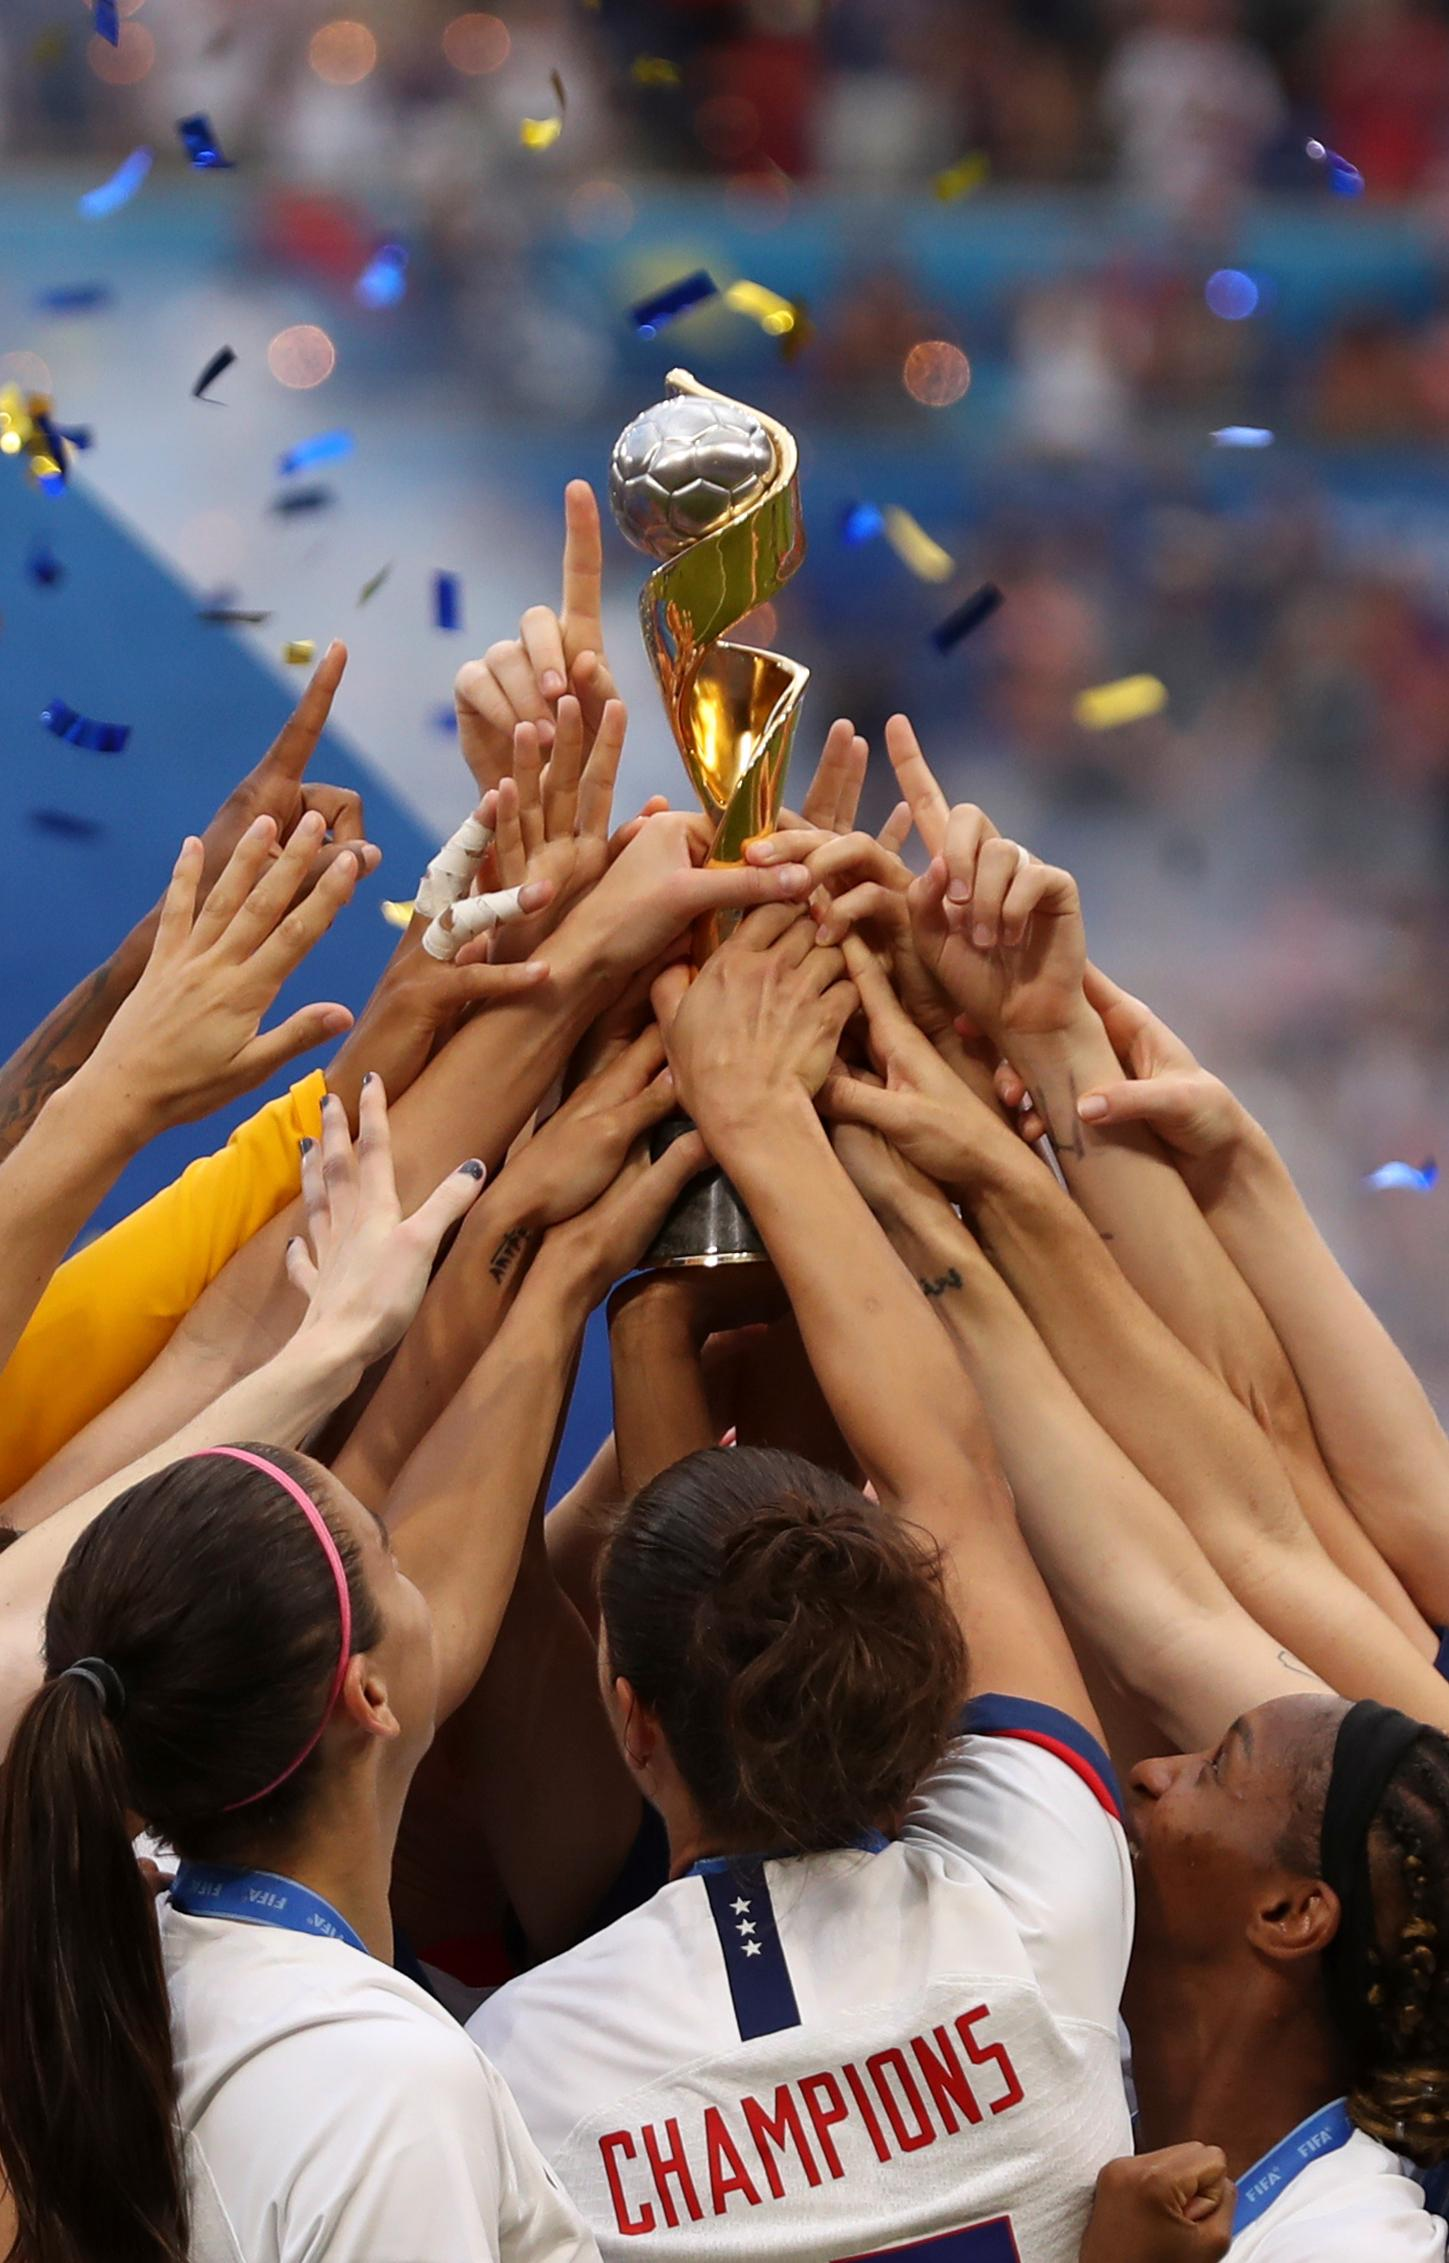 The United States players hold the trophy celebrating at the end of the Women's World Cup final soccer match between US and The Netherlands at the Stade de Lyon in Decines, outside Lyon, France, Sunday, July 7, 2019. The US defeated the Netherlands 2-0. (AP Photo/Francisco Seco)